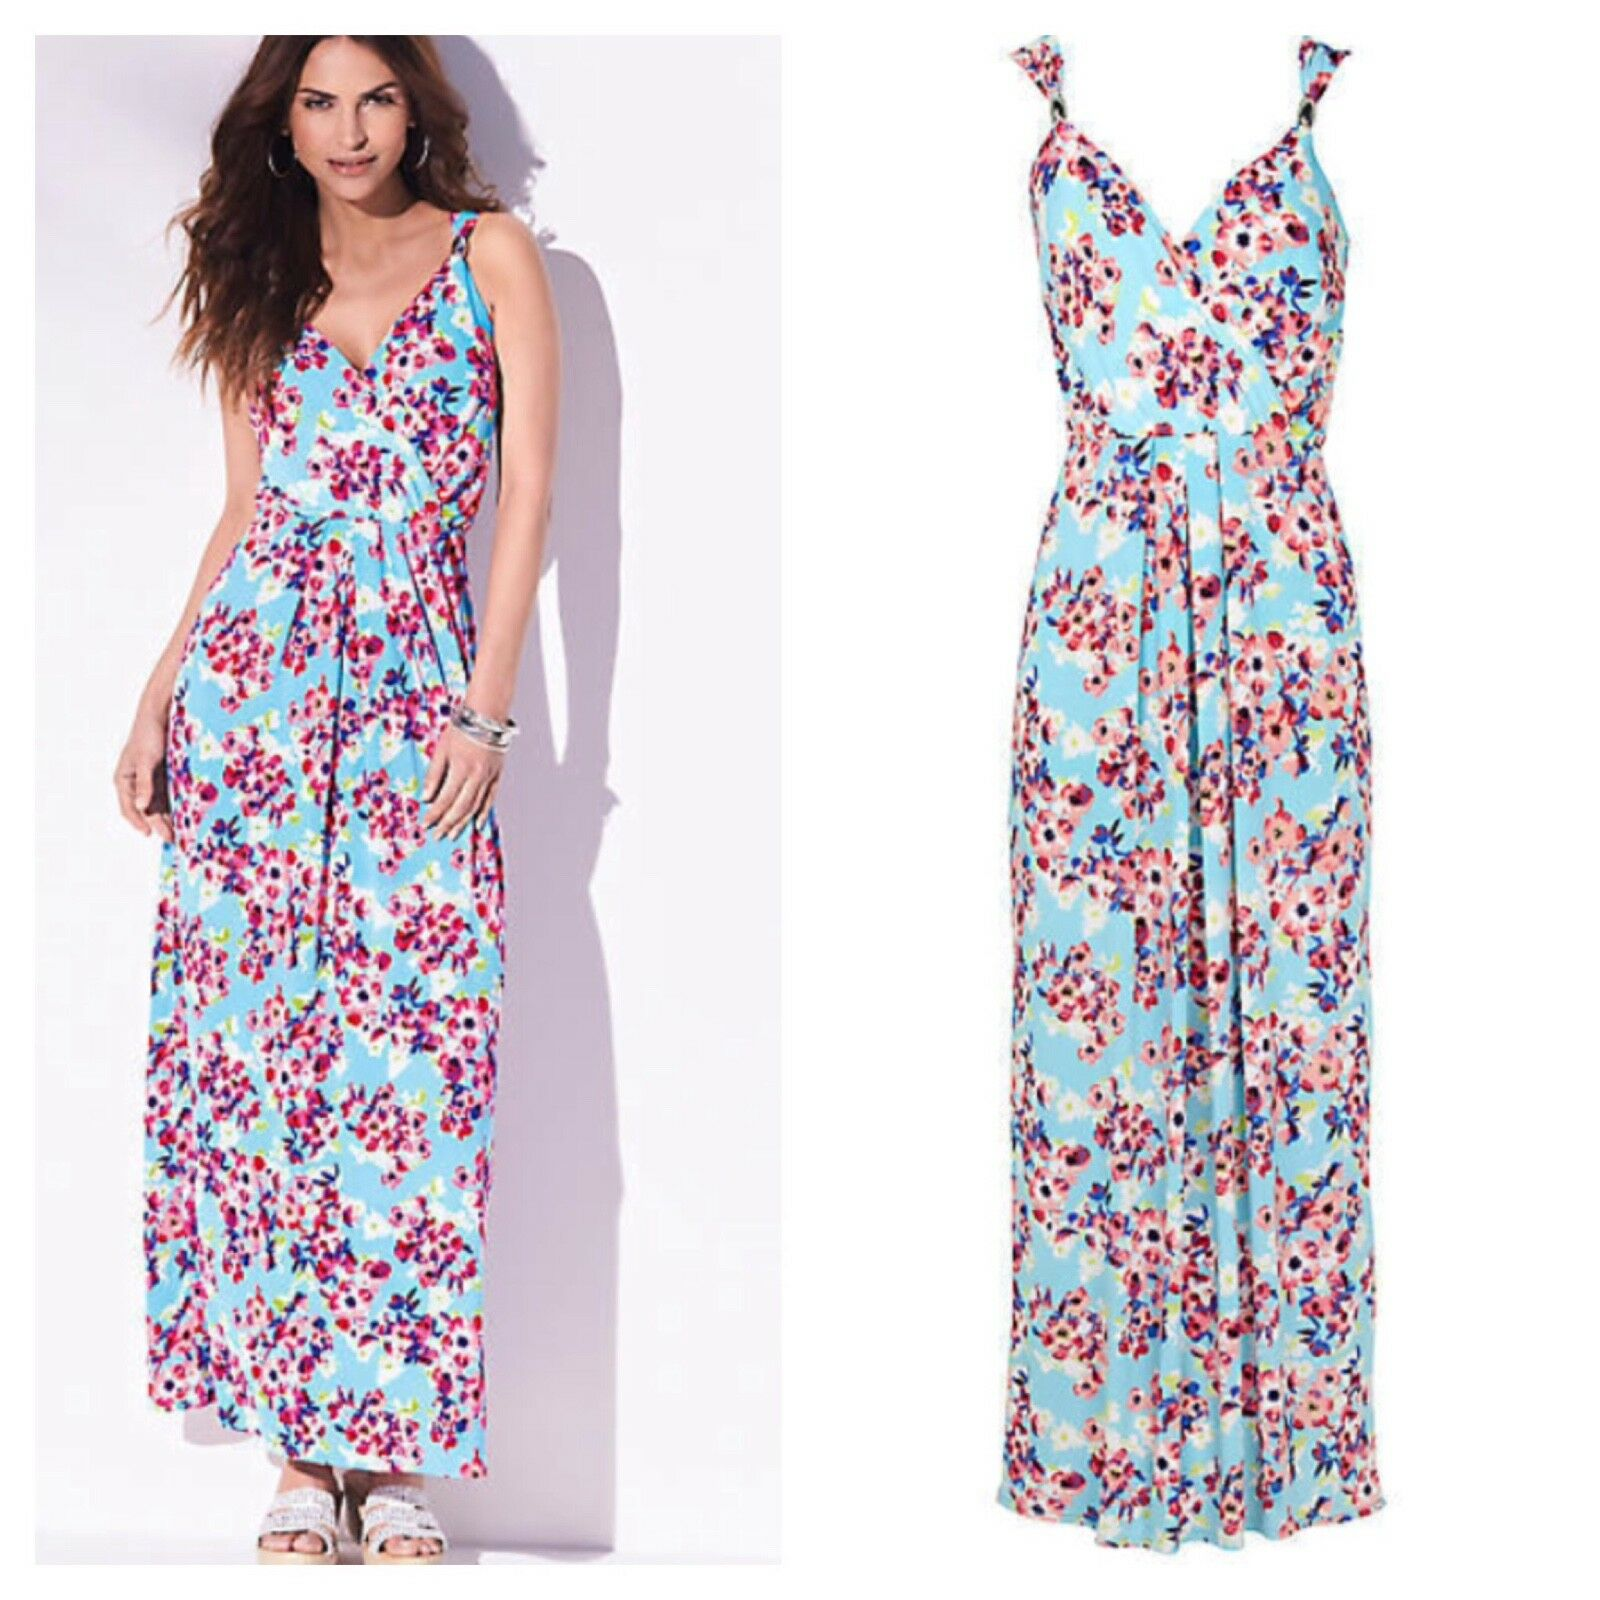 Kaleidoscope Size 12 bluee Multi Floral Print Summer Maxi DRESS Holiday Fab